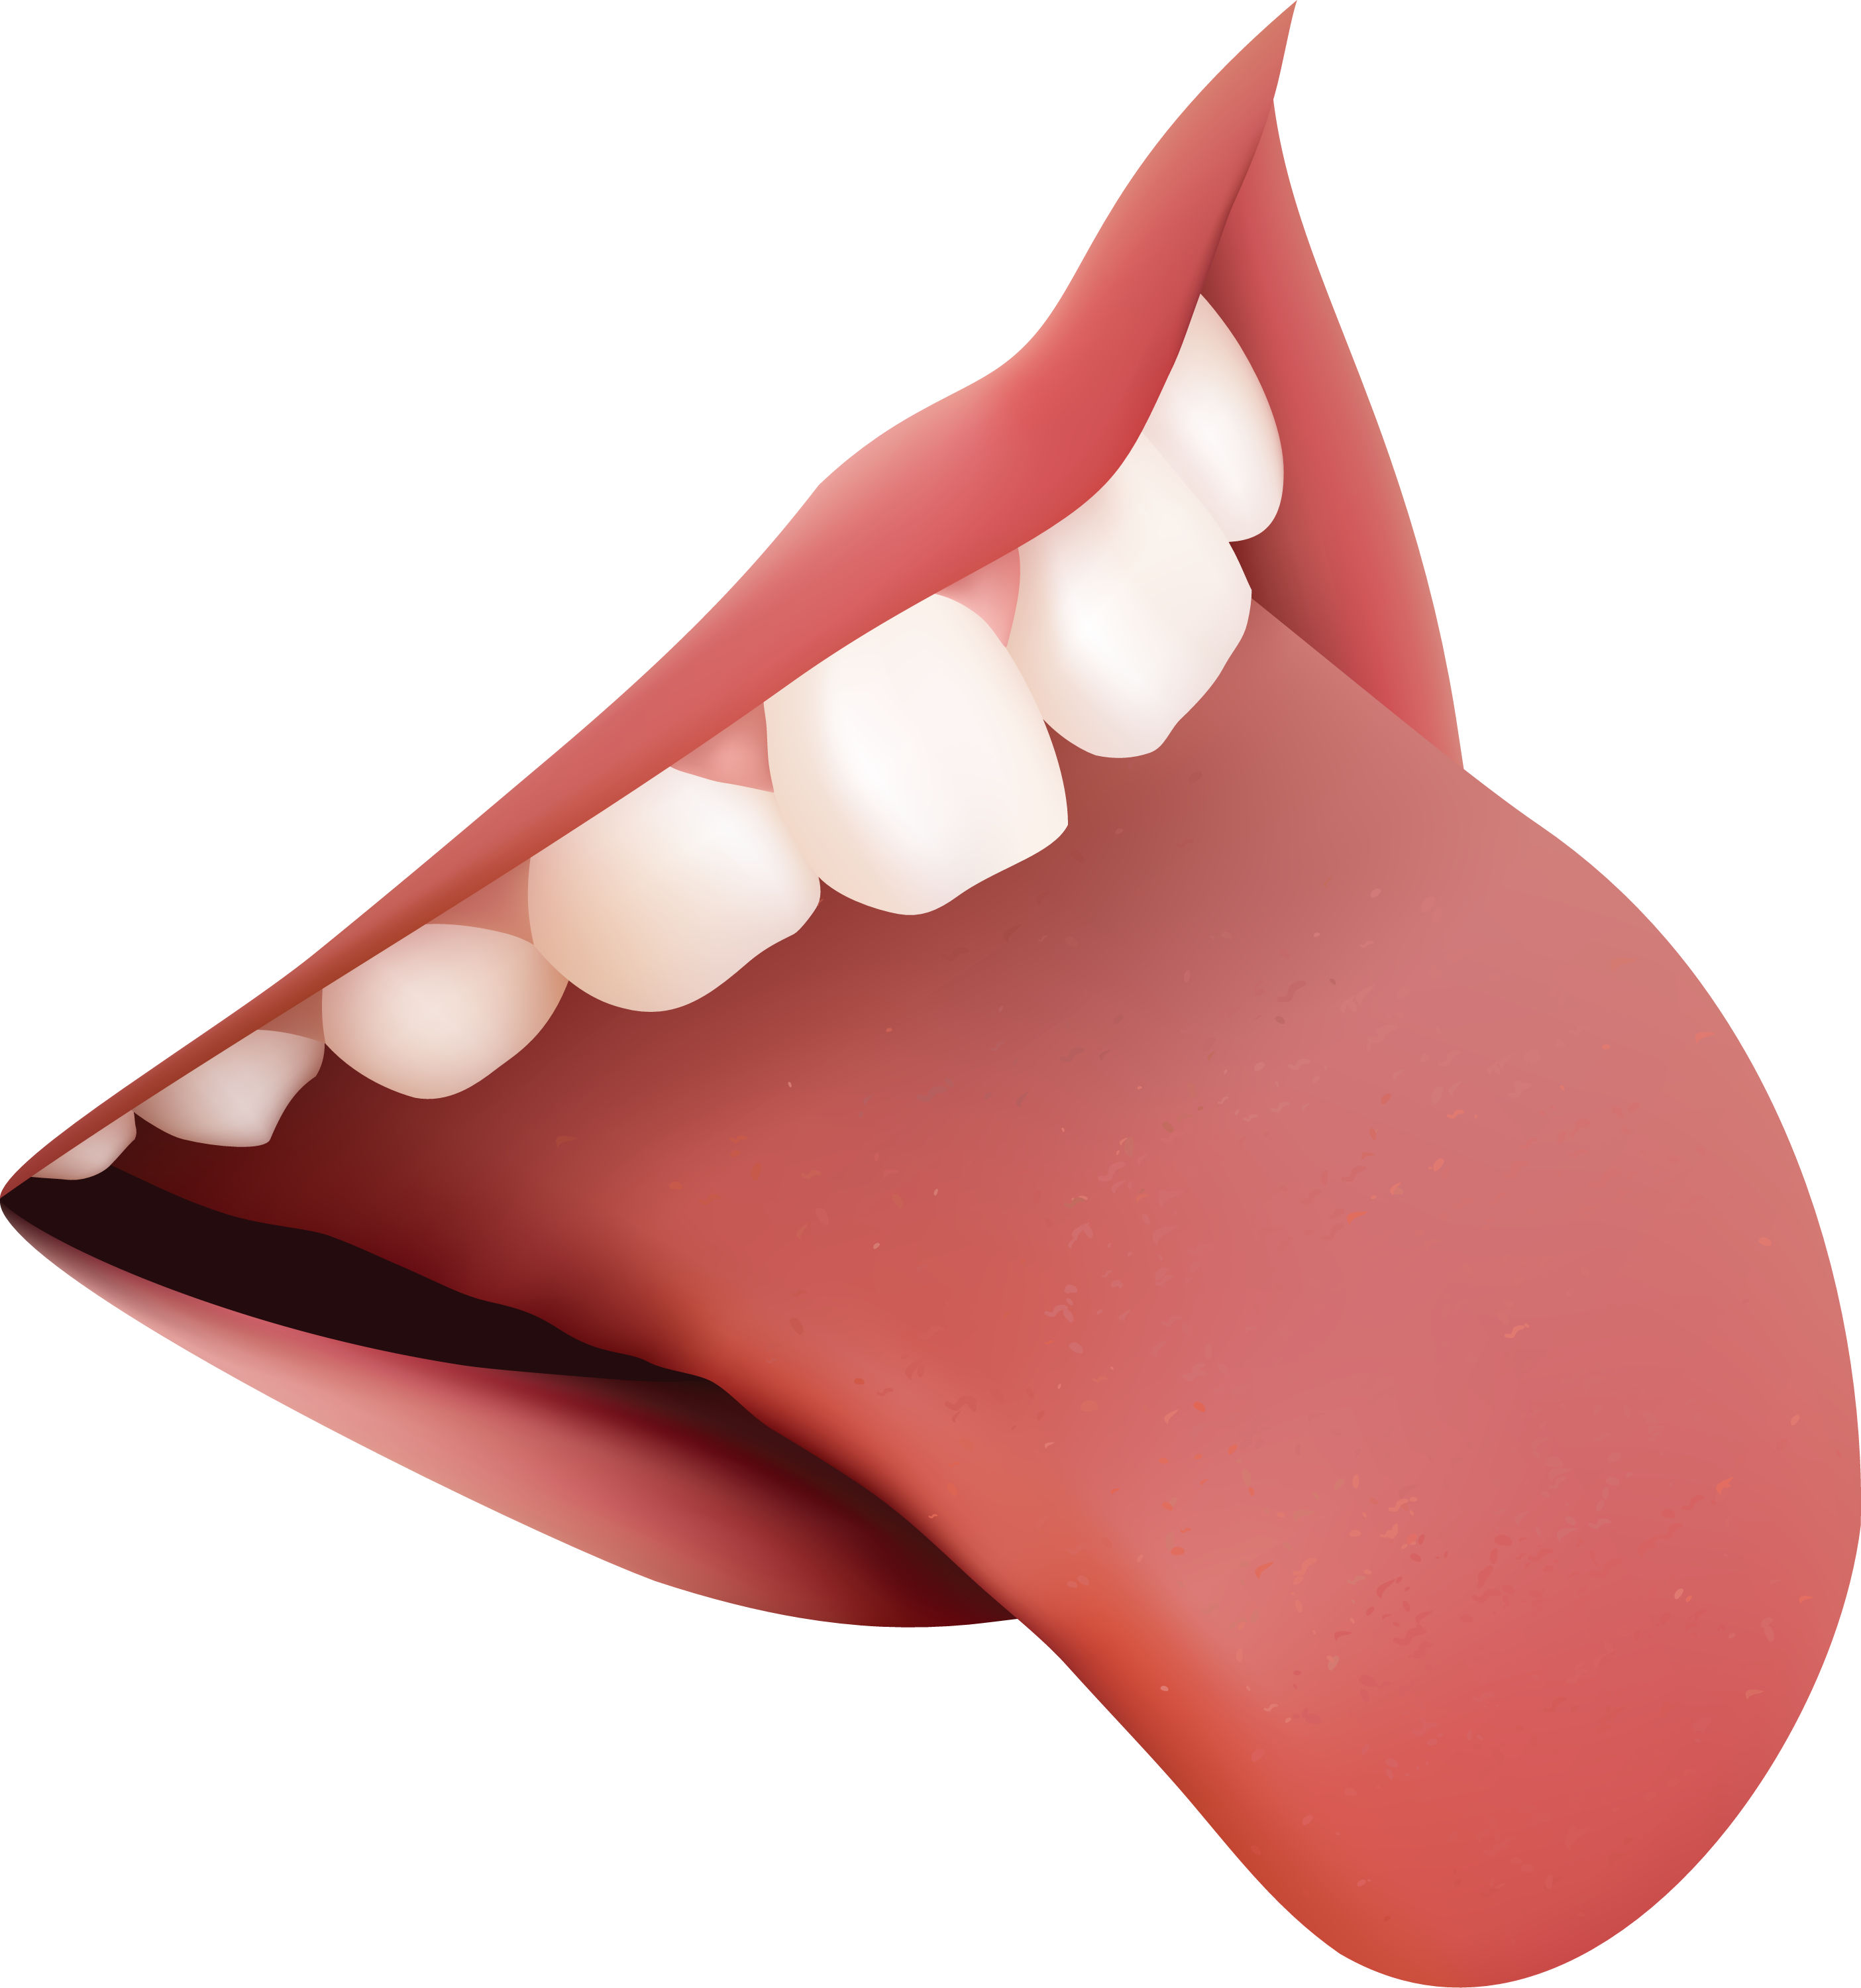 Lips PNG image - Mouth Talking PNG HD